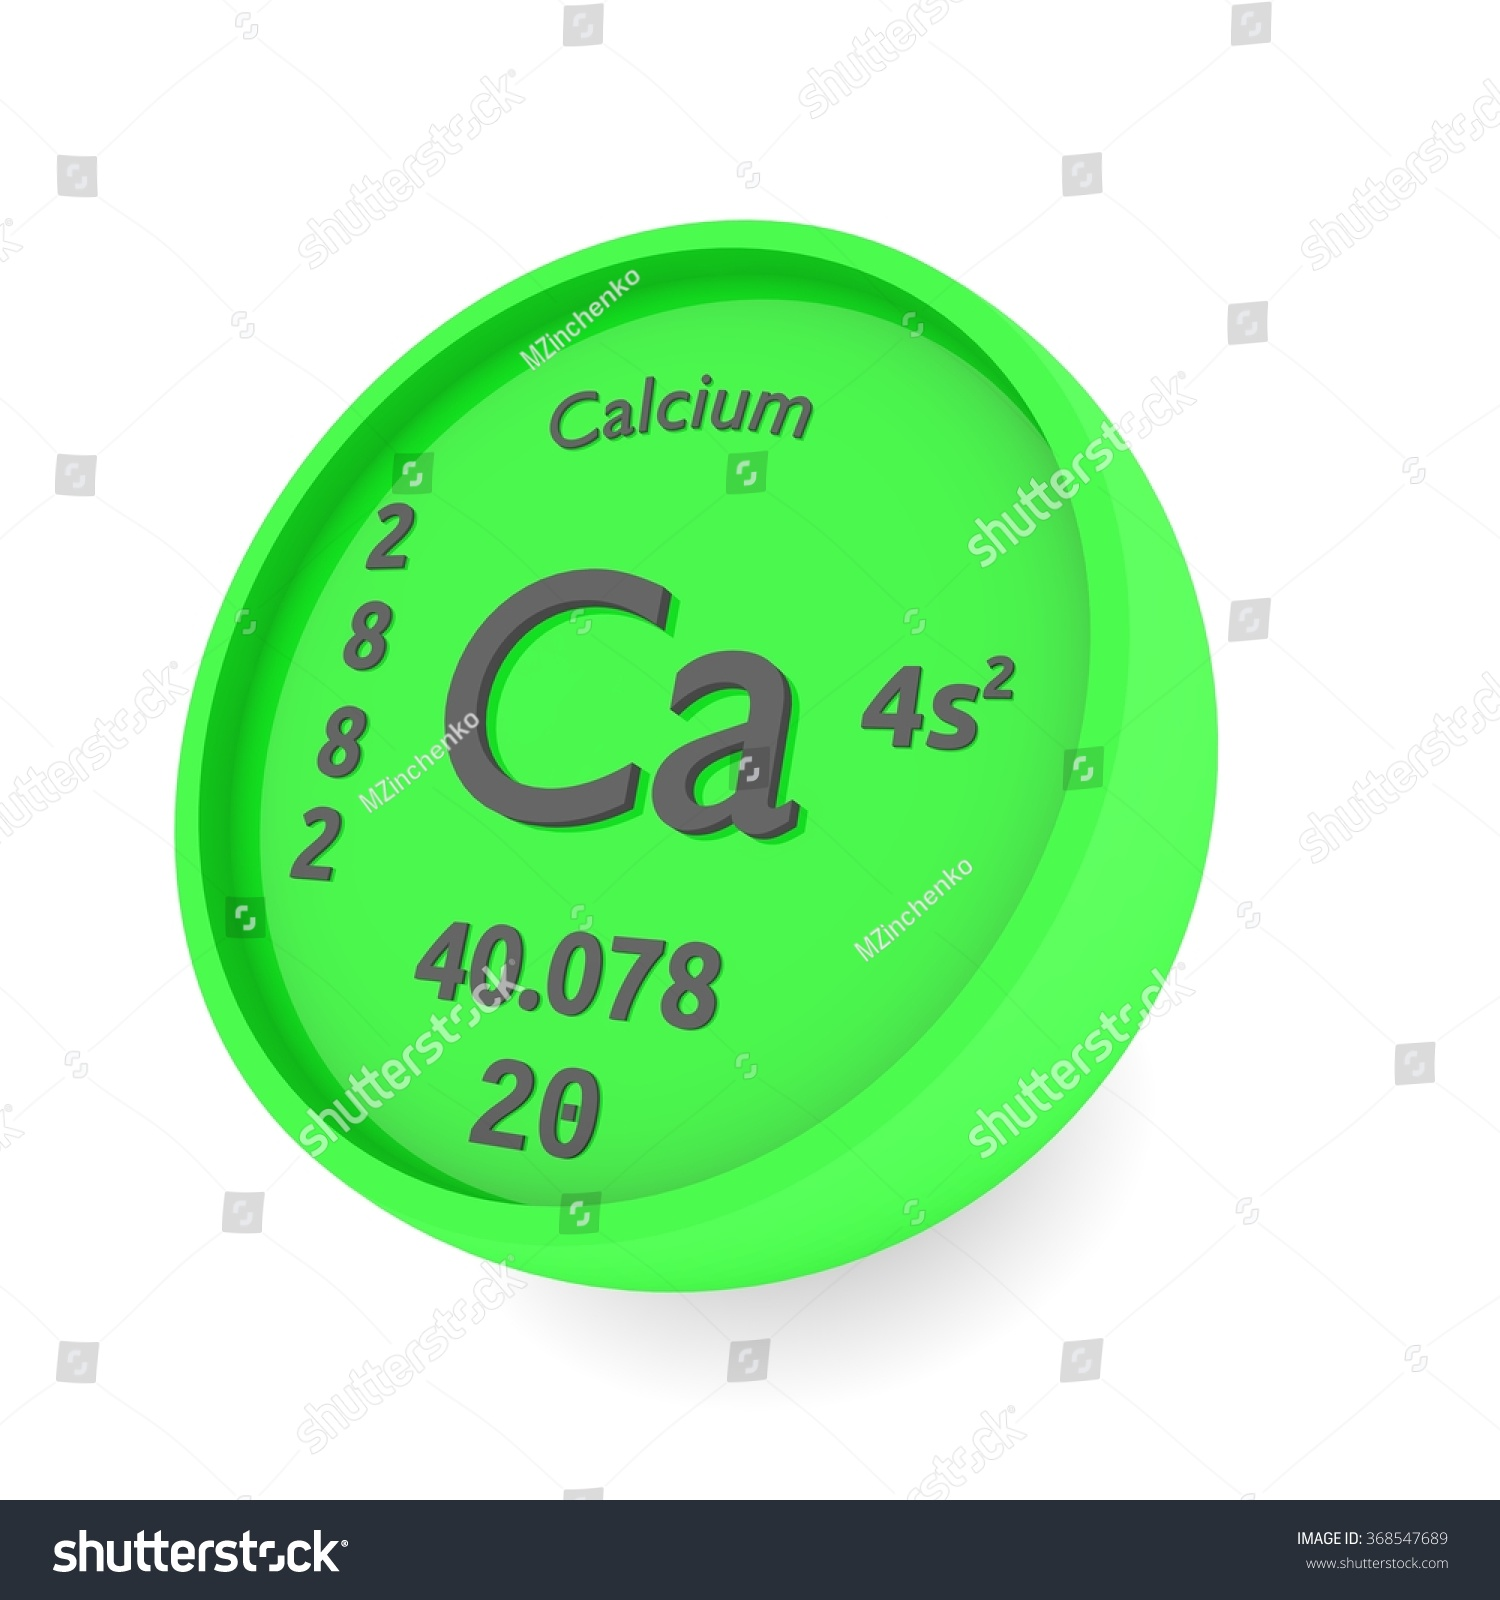 S in periodic table gallery periodic table images calcium chemical element sin in periodic table stock photo calcium chemical element sin in periodic table gamestrikefo Images